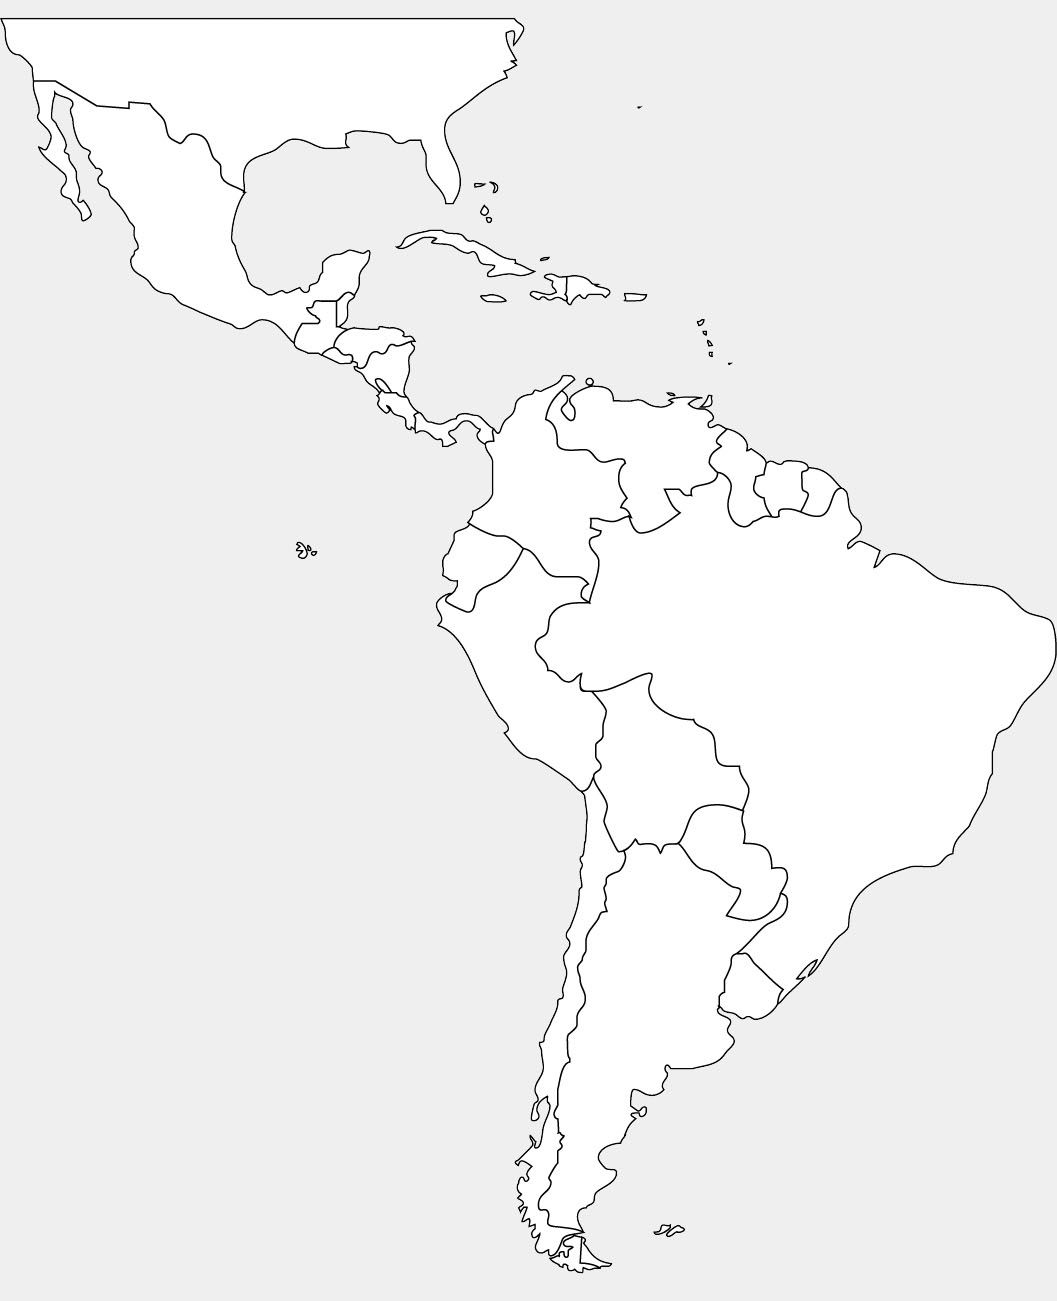 north and south america map blank Blank Map Of North And South America South America Map North north and south america map blank